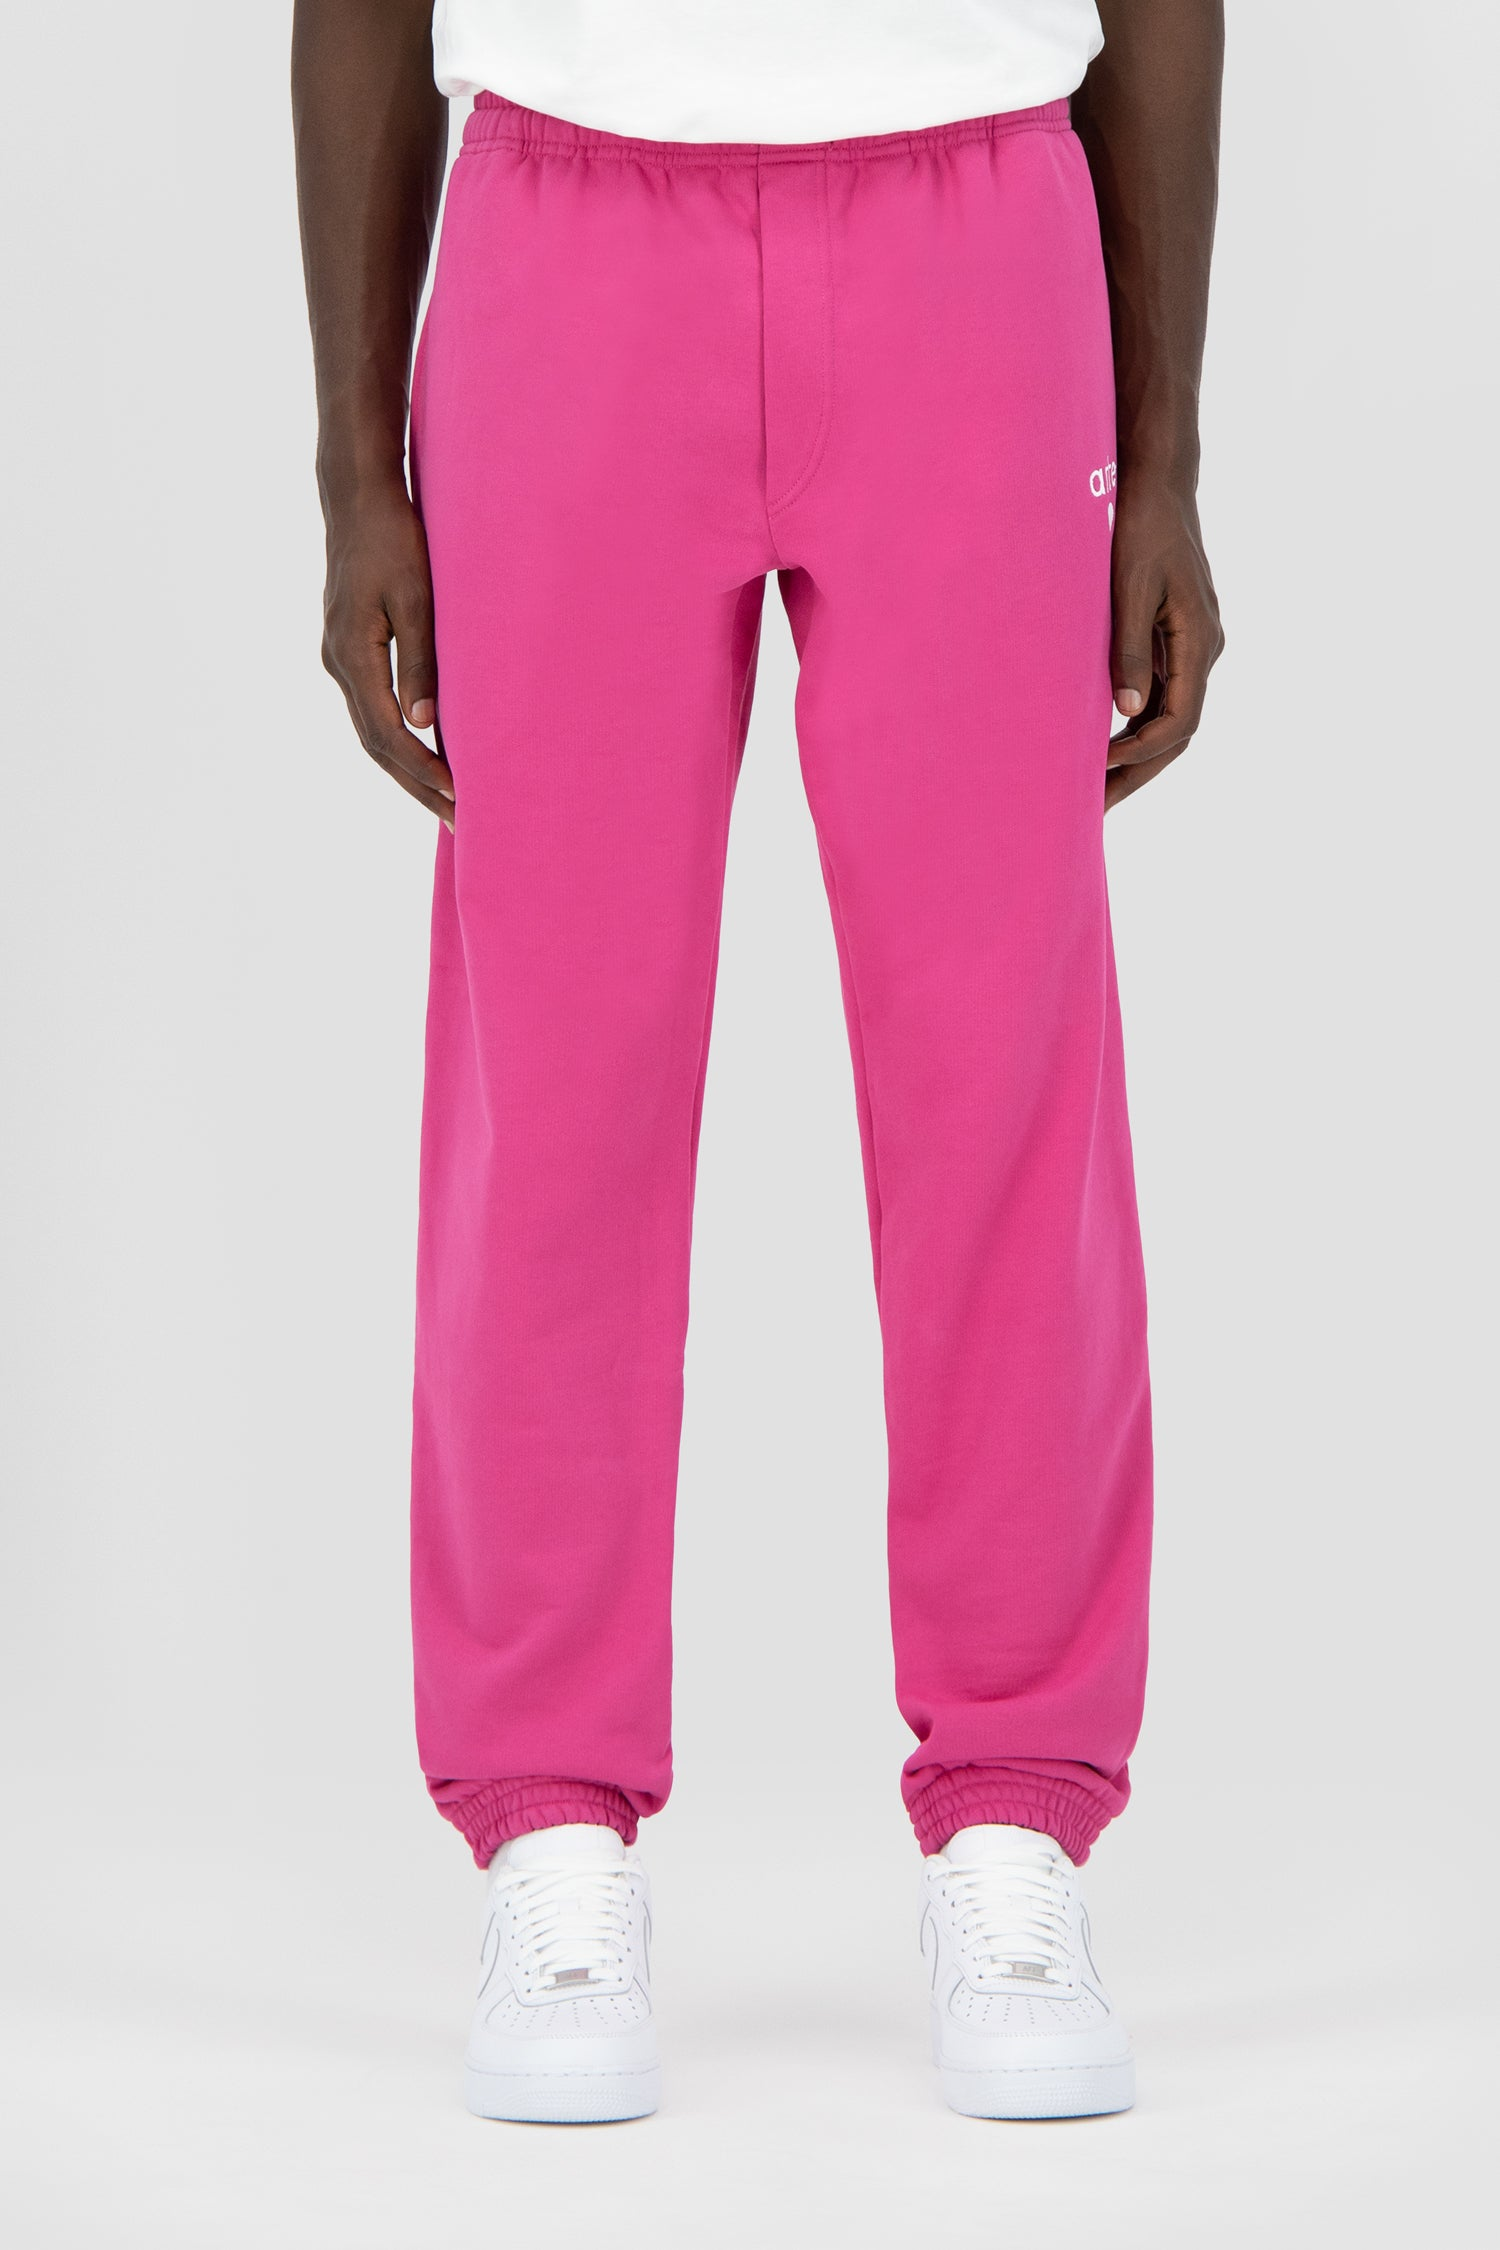 Tristian Heart Sweatpants - Pink